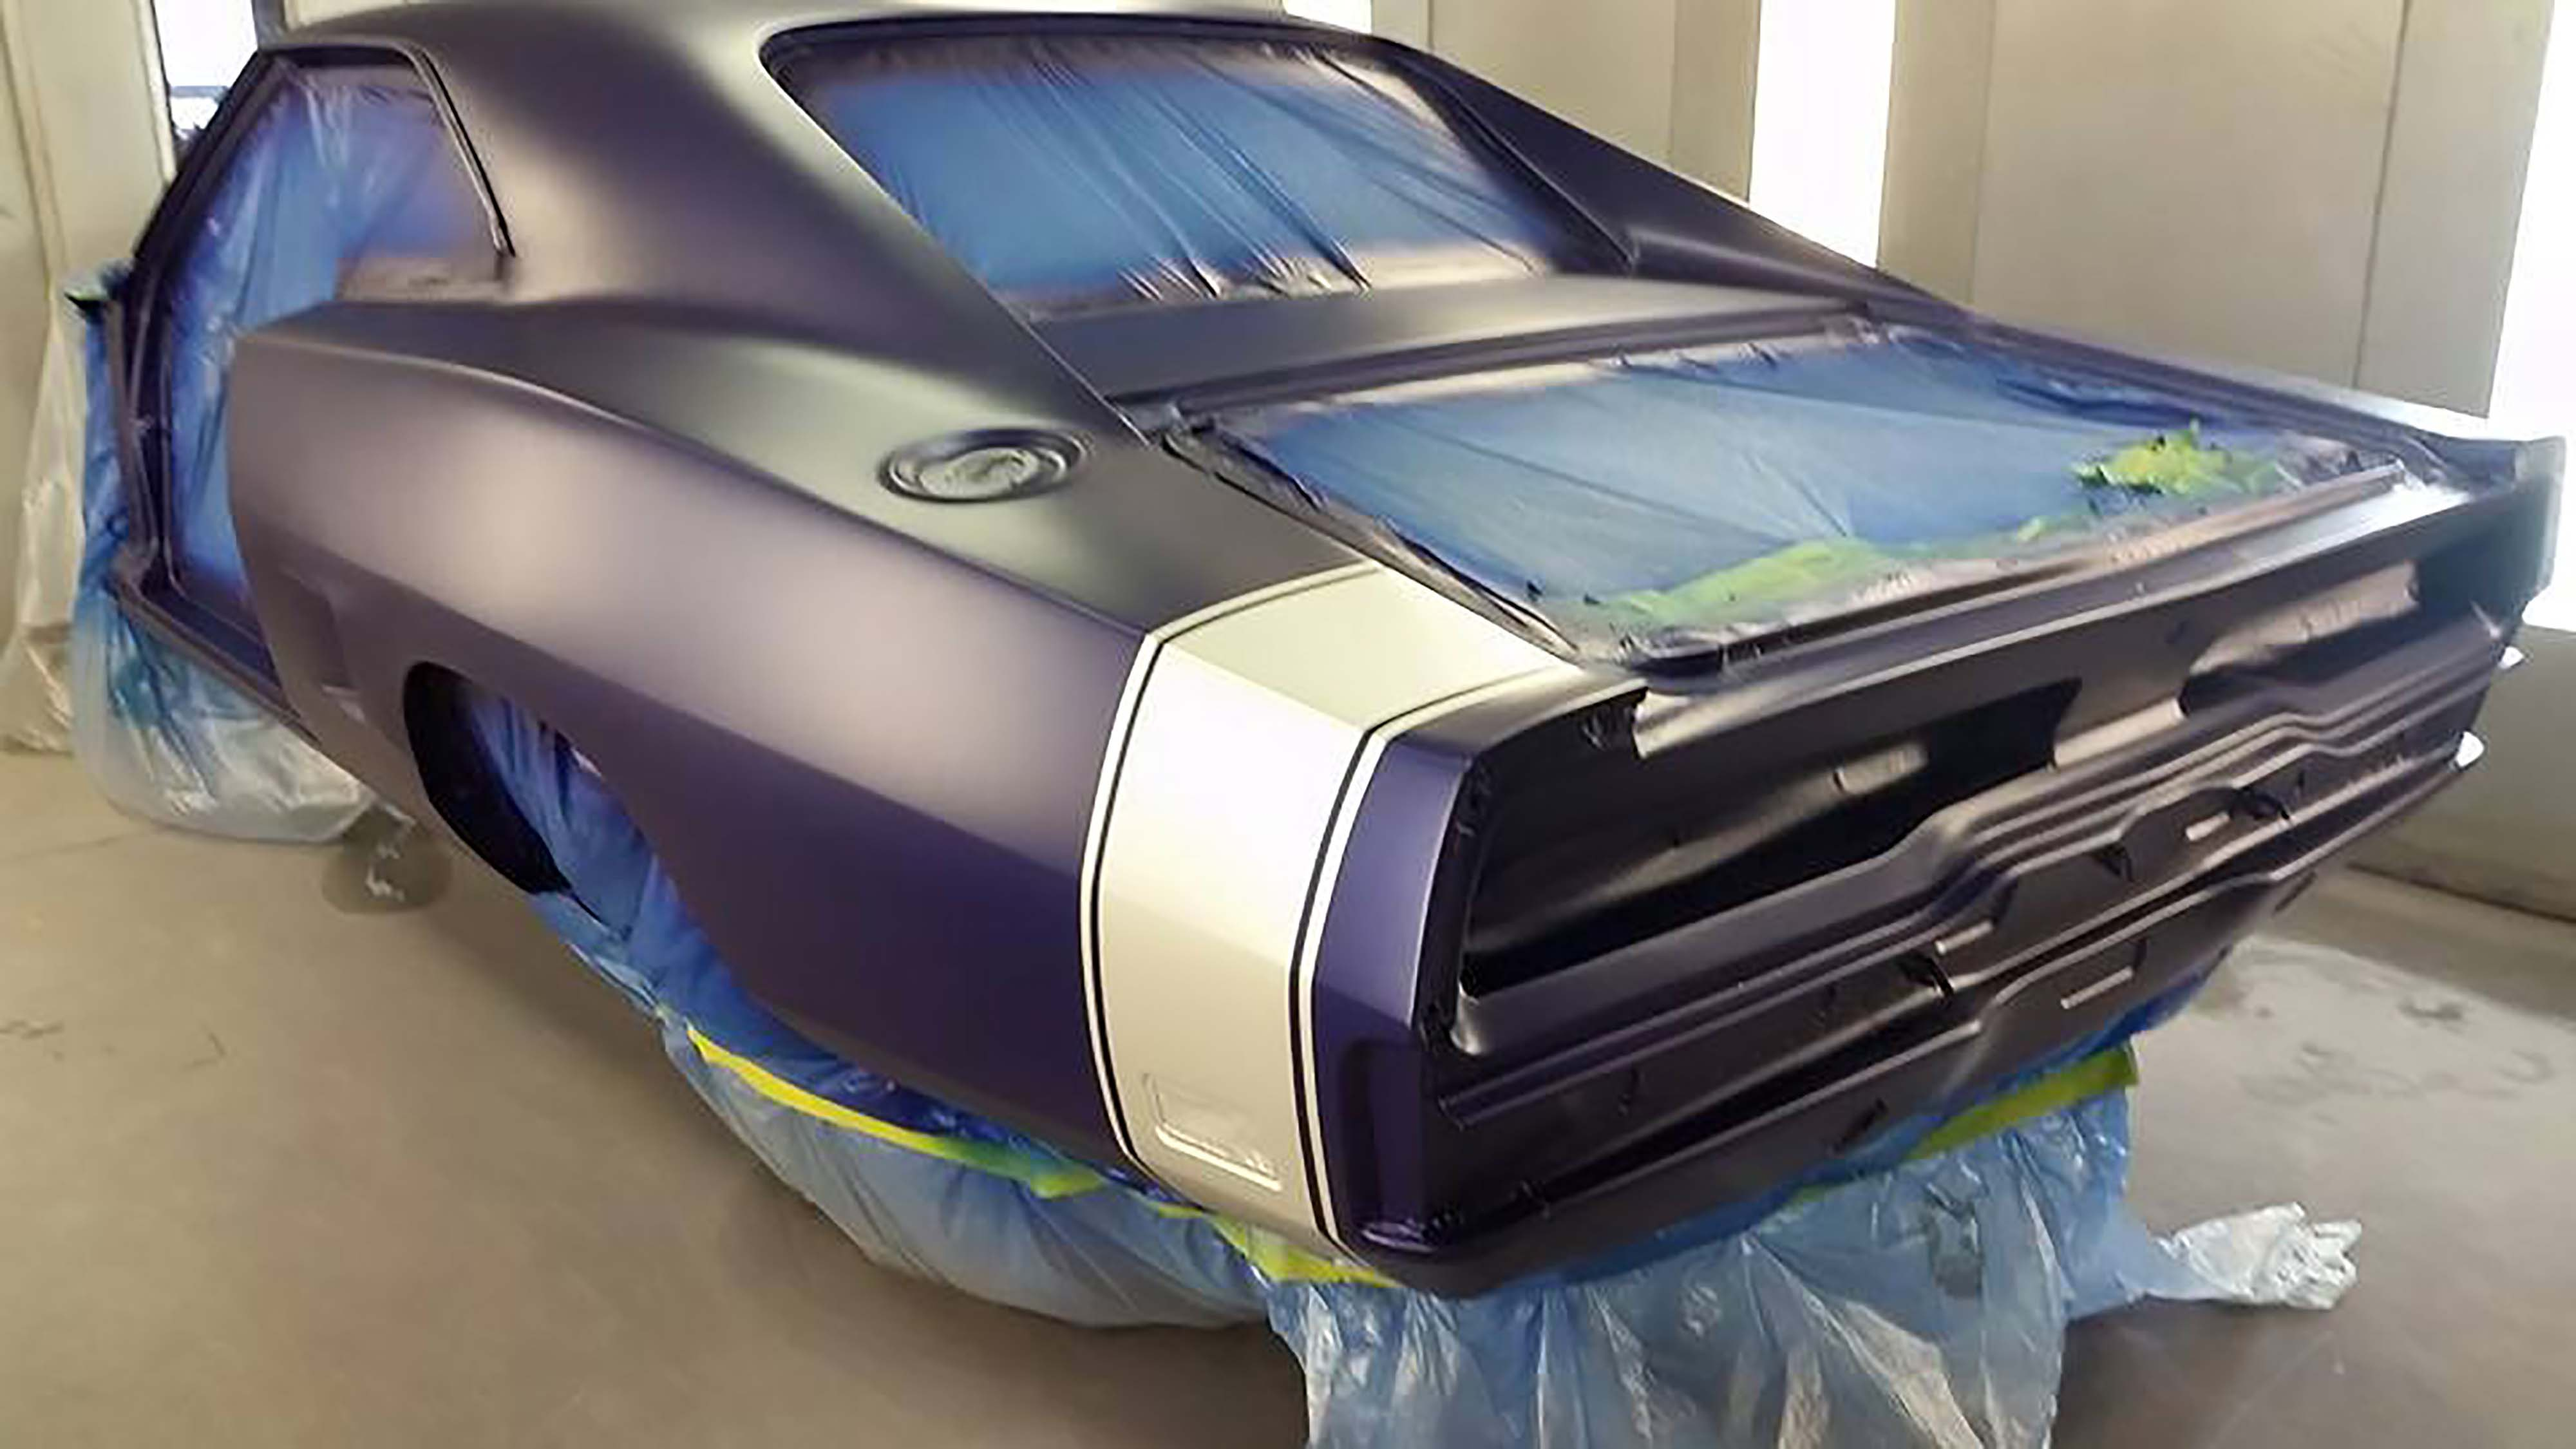 Before the clear coat is applied, the car has a matte finish to it, yet you can really see at this point the quality of the Axalta paint and the skill of the application.